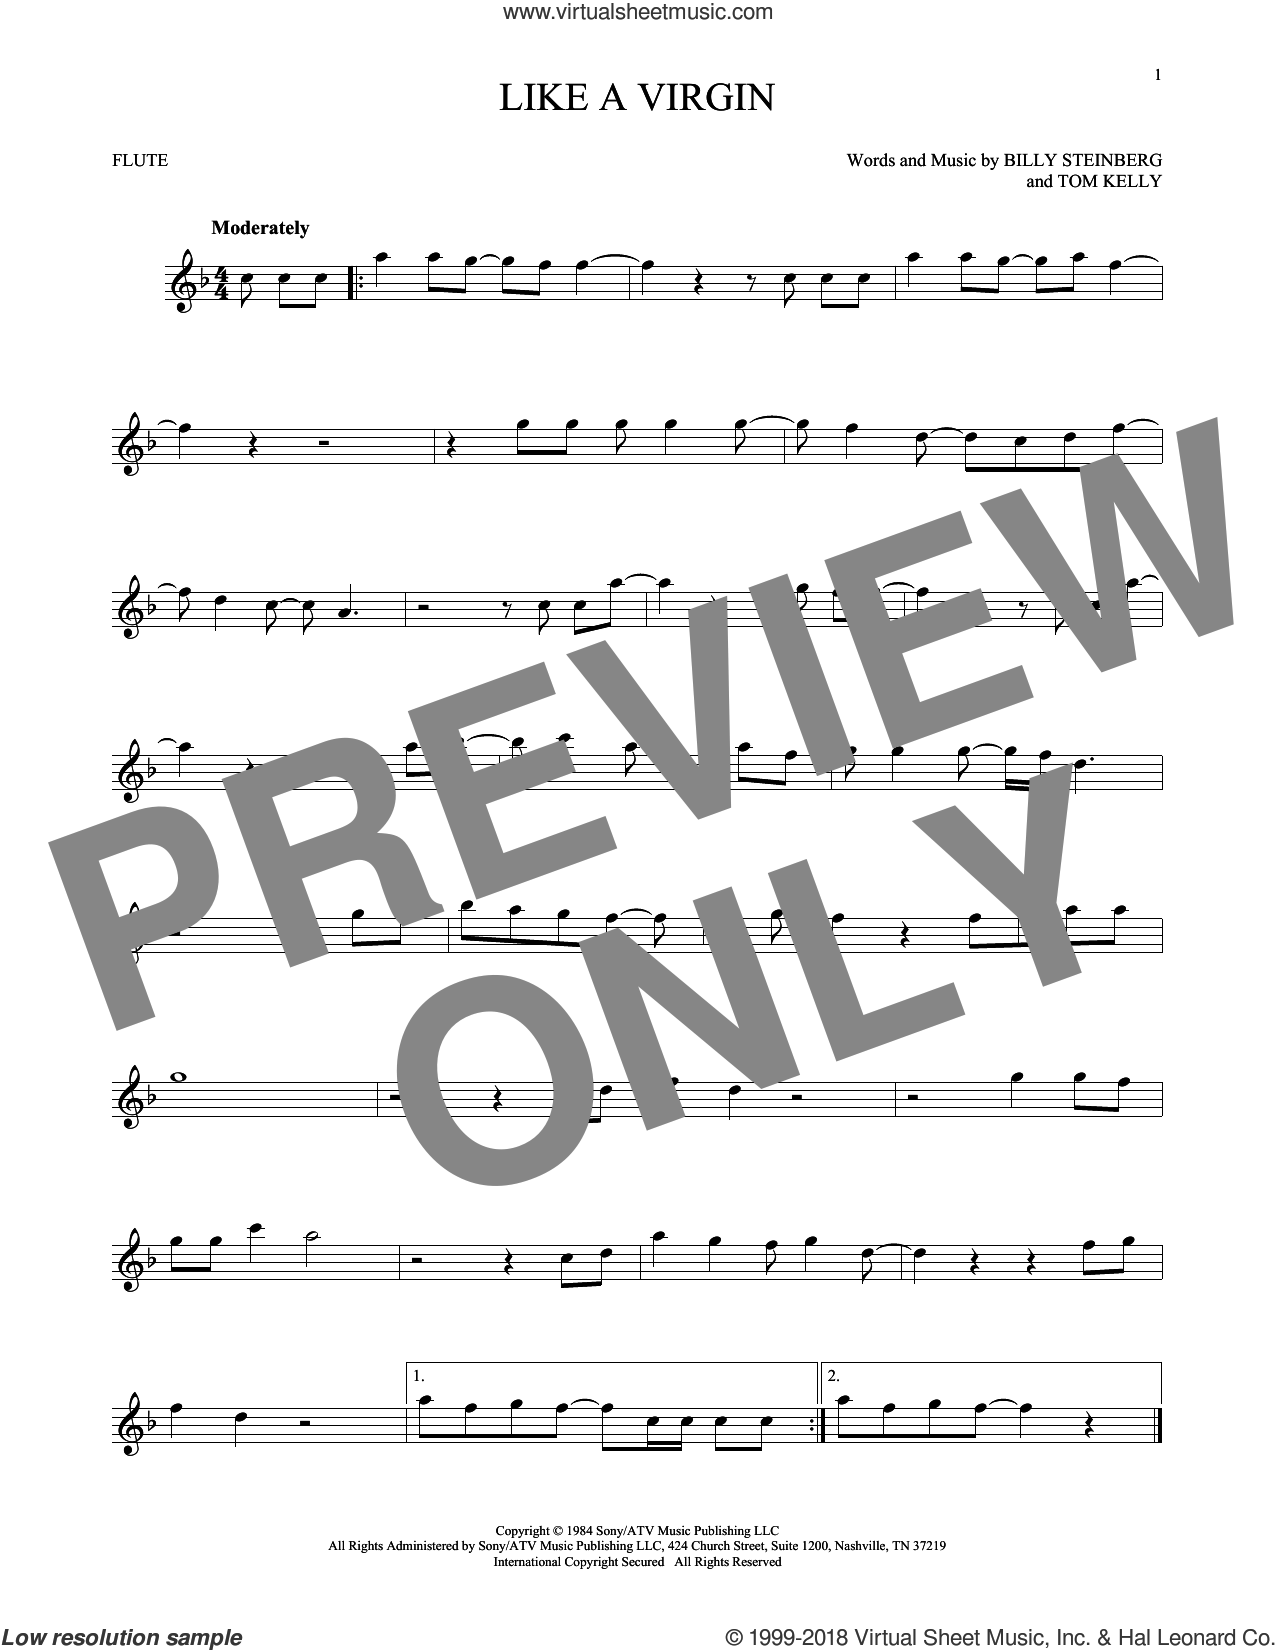 Like A Virgin sheet music for flute solo by Madonna, Billy Steinberg and Tom Kelly, intermediate skill level